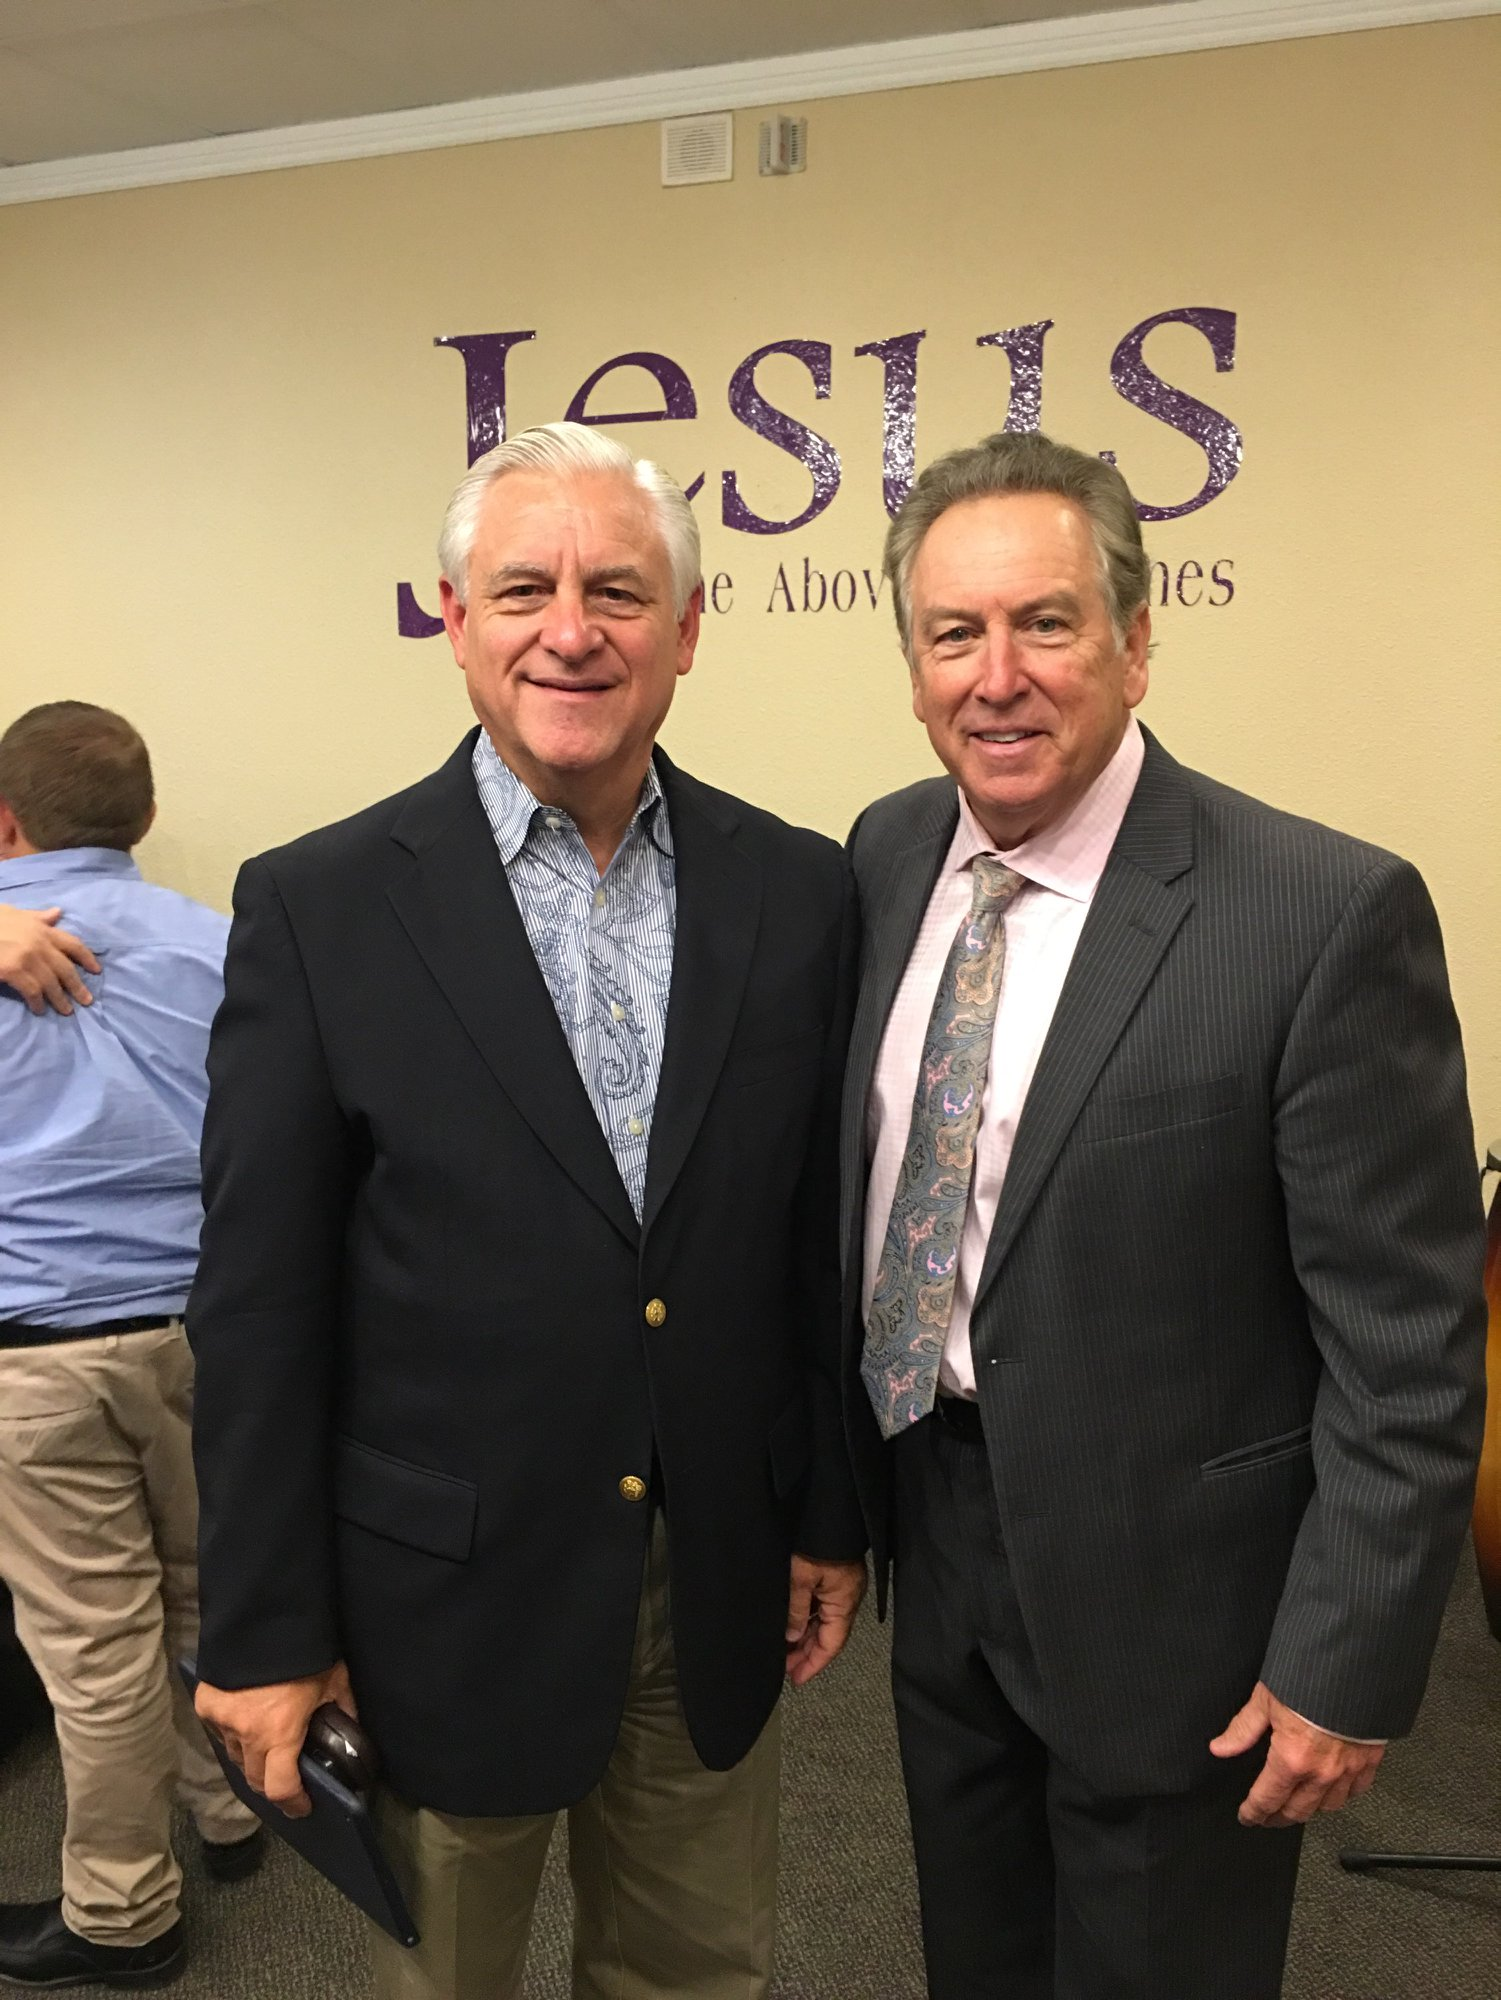 Winslow with David K. Bernard, UPCI General Superintendent, at a conference.